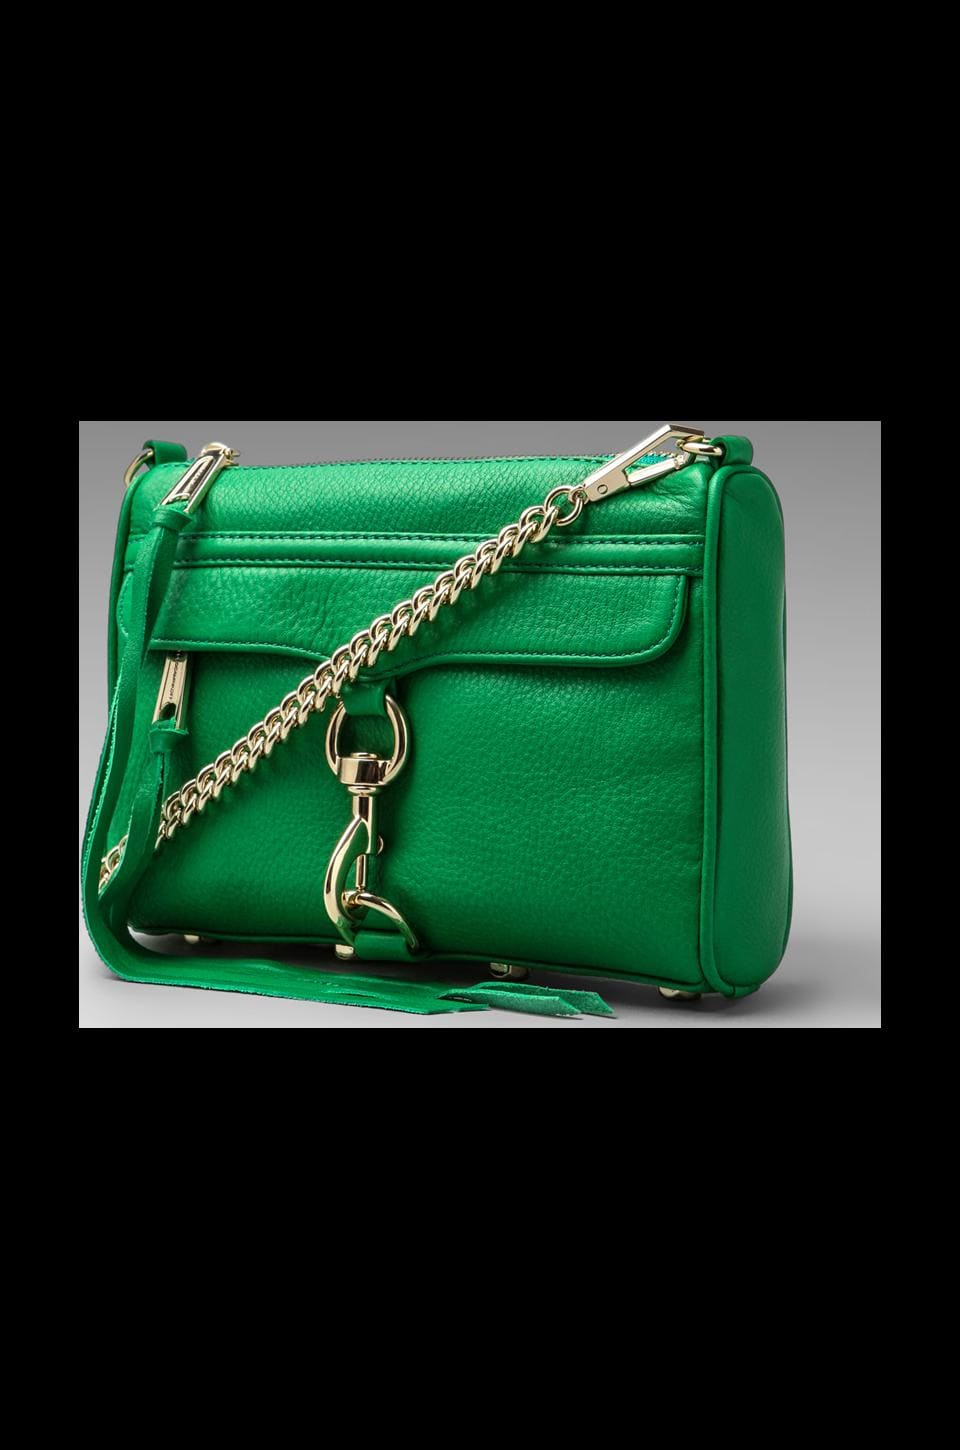 Rebecca Minkoff Mini Mac in Jungle Green